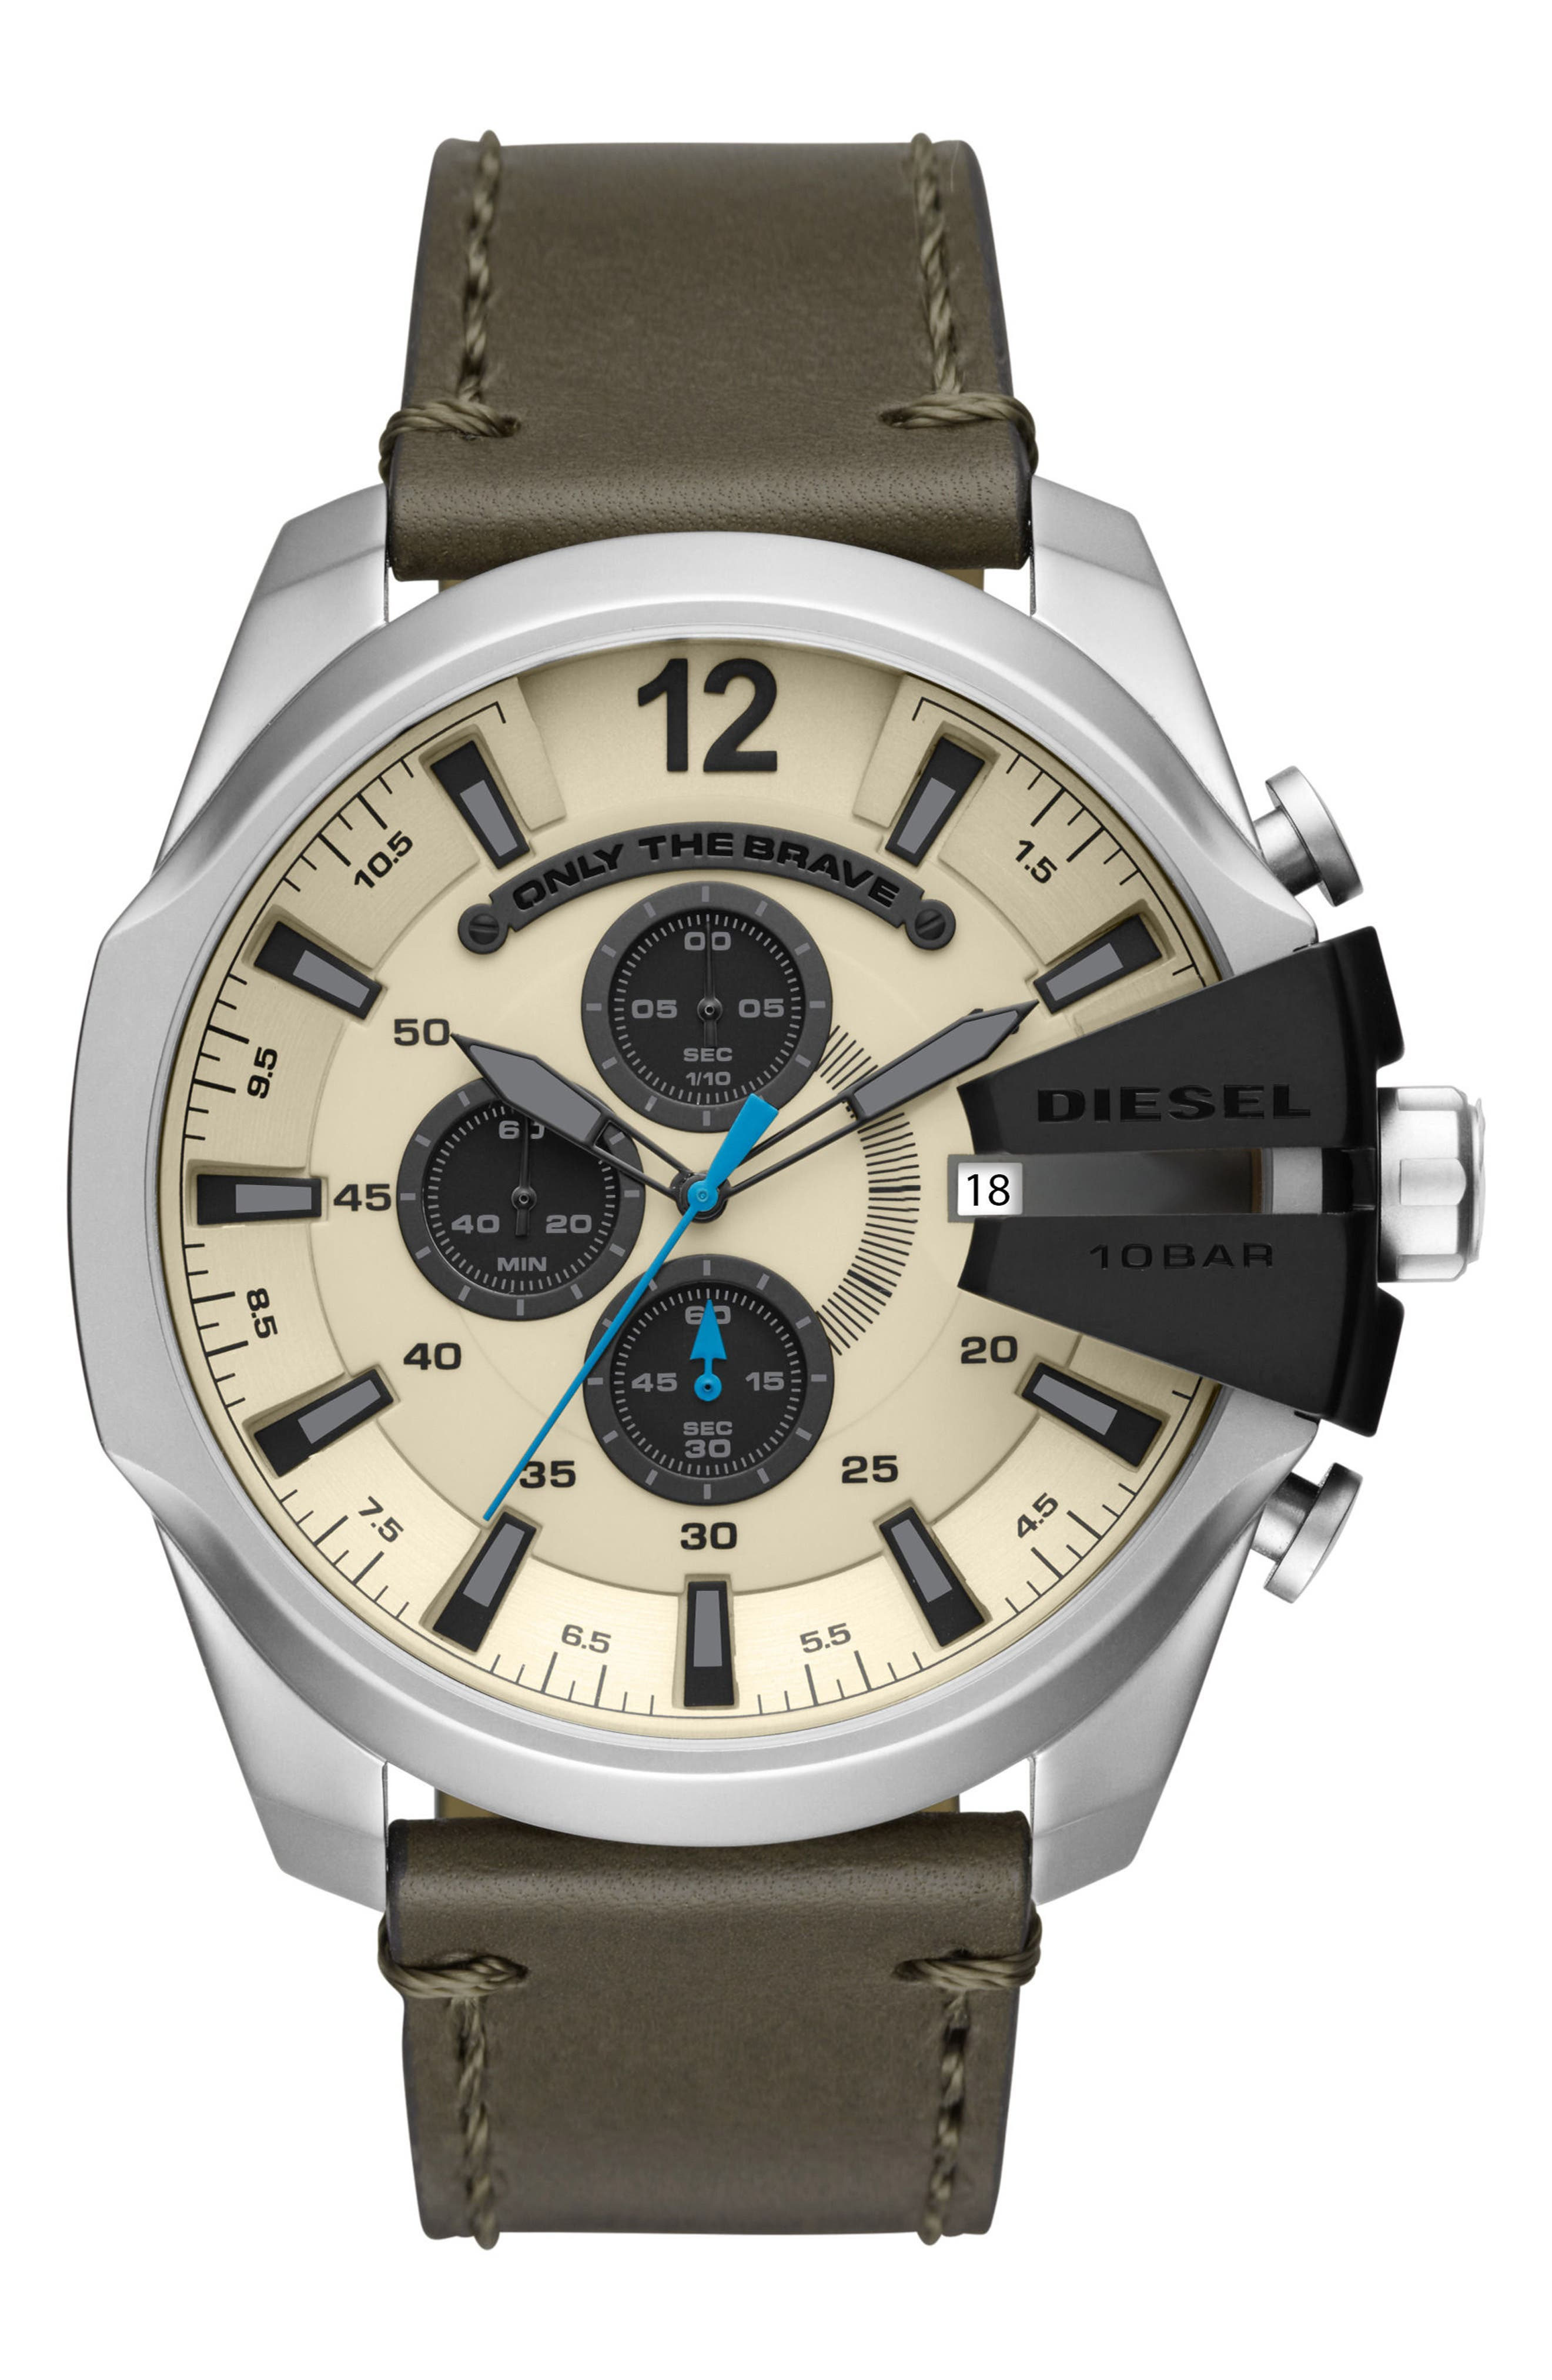 Alternate Image 1 Selected - DIESEL® Mega Chief Chronograph Leather Strap Watch, 51mm x 59mm